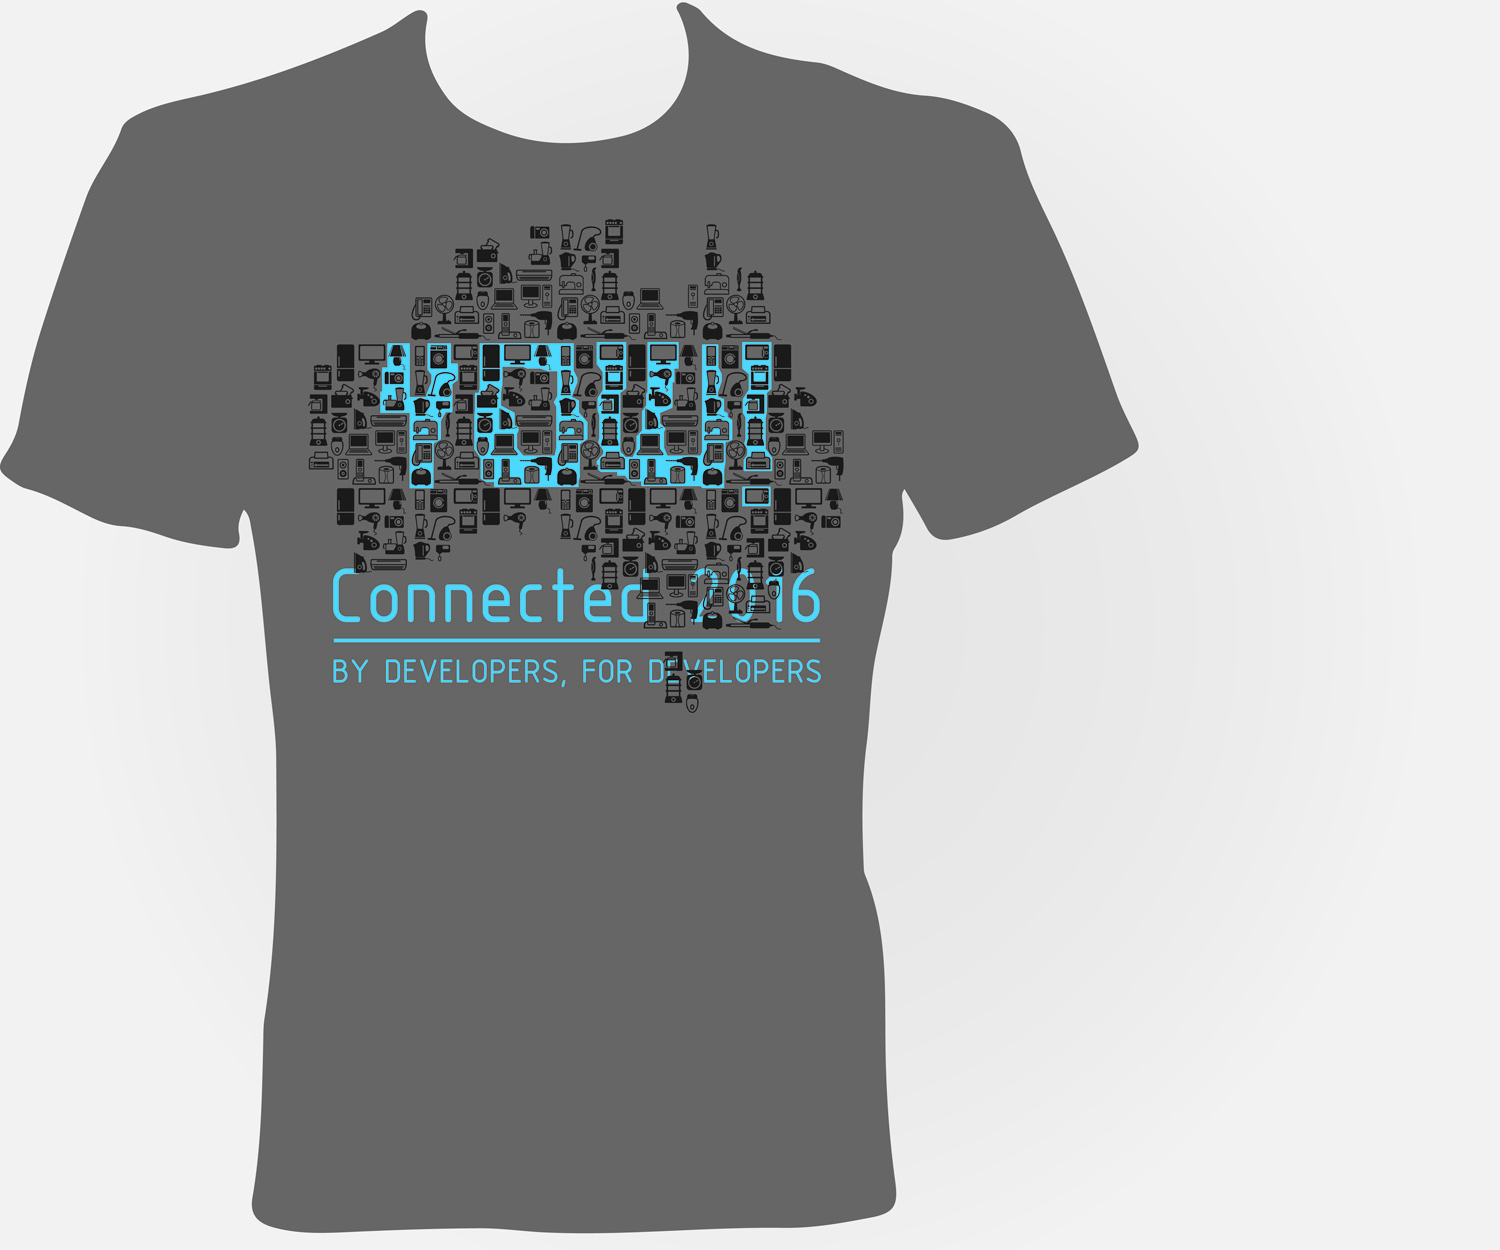 Shirt design melbourne - T Shirt Design By Jayneel_s For Mobile Development Conference In Melbourne Yow Connected